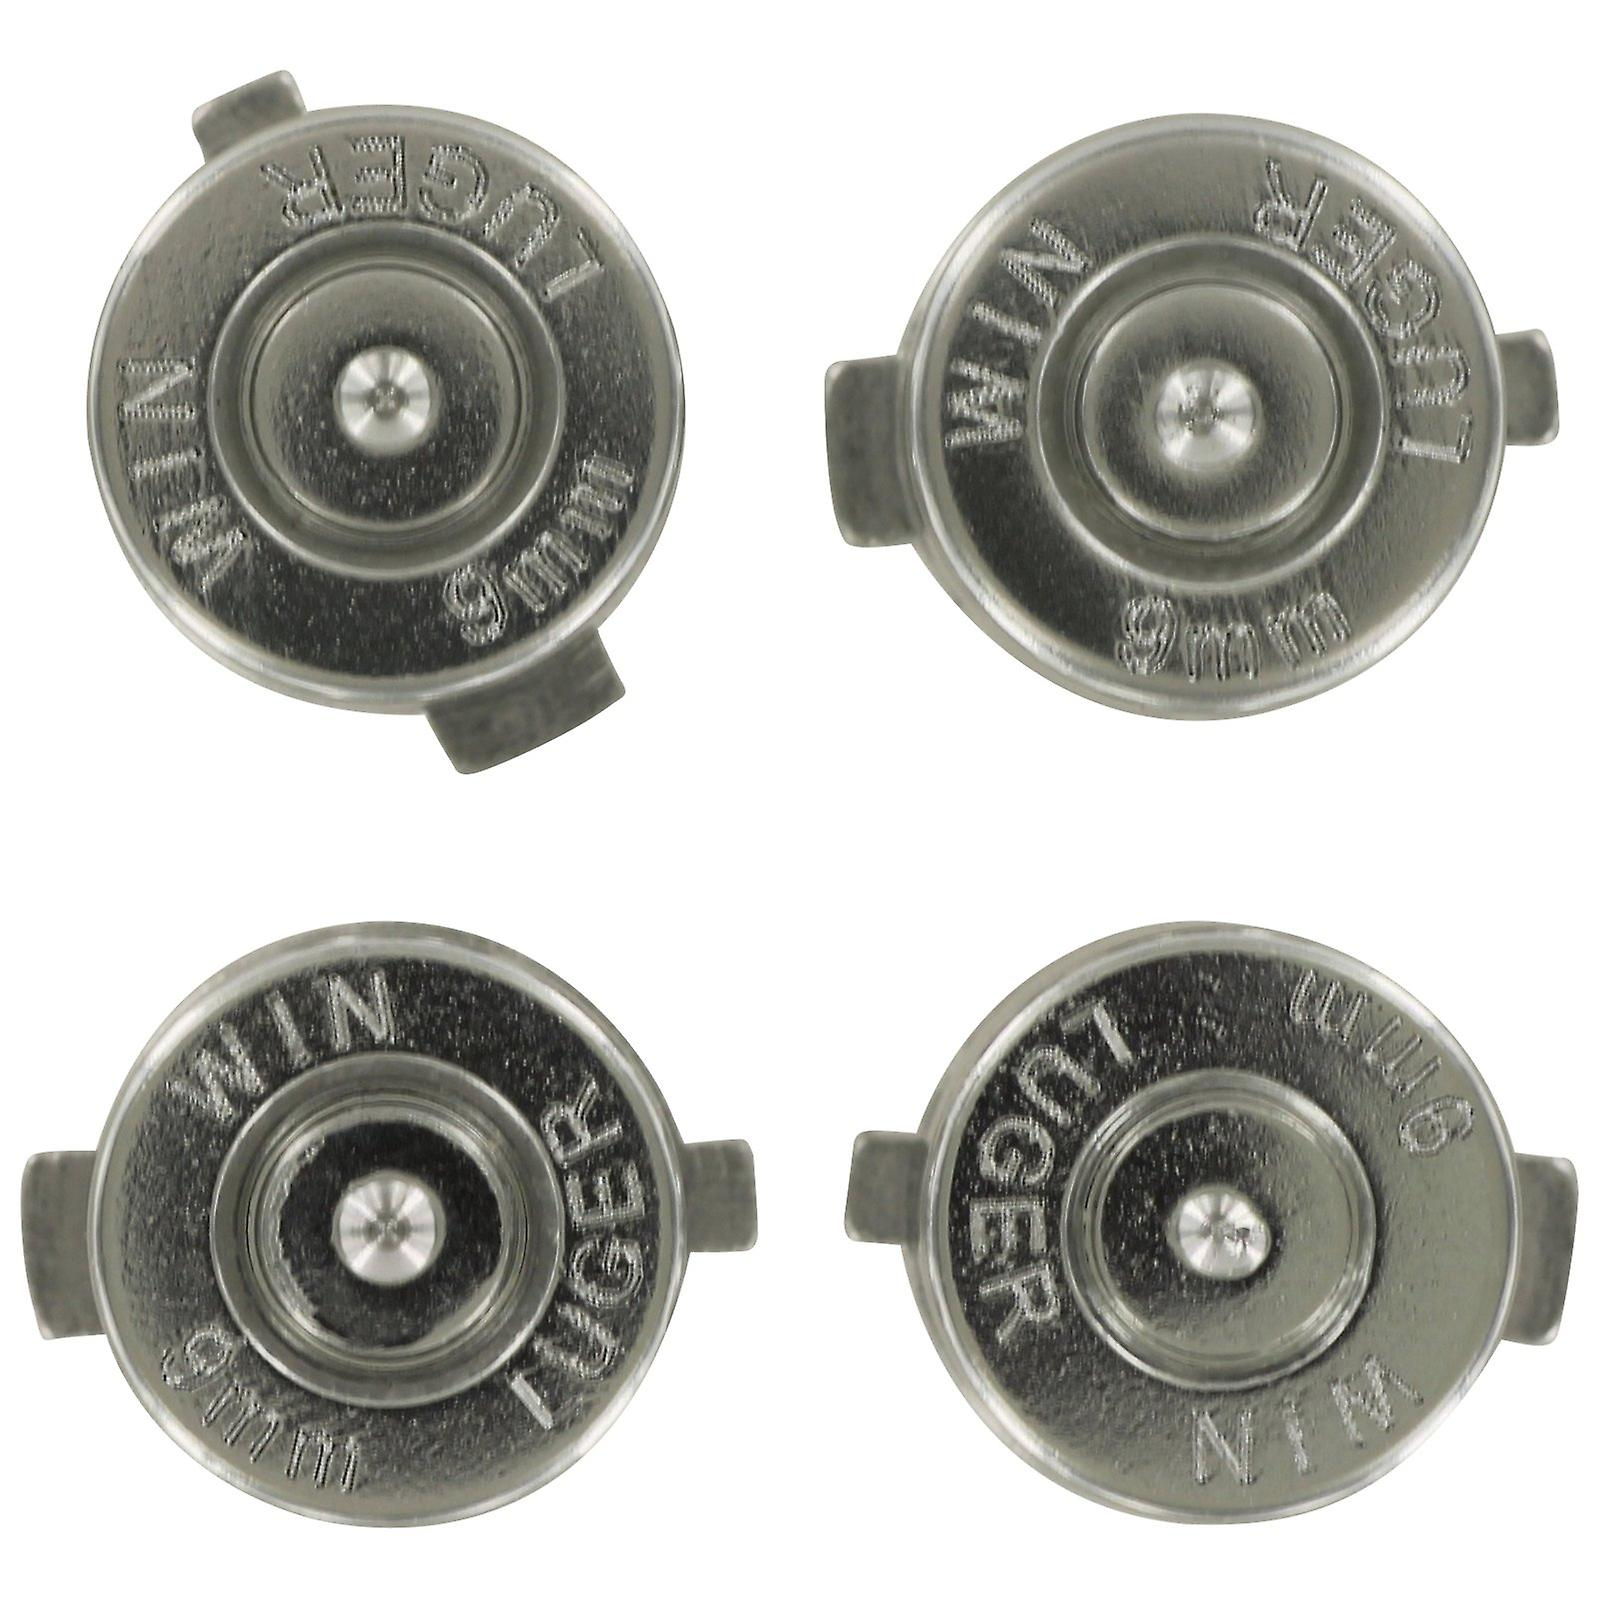 Aluminium metal action bullet button set for sony ps4 controllers - silver